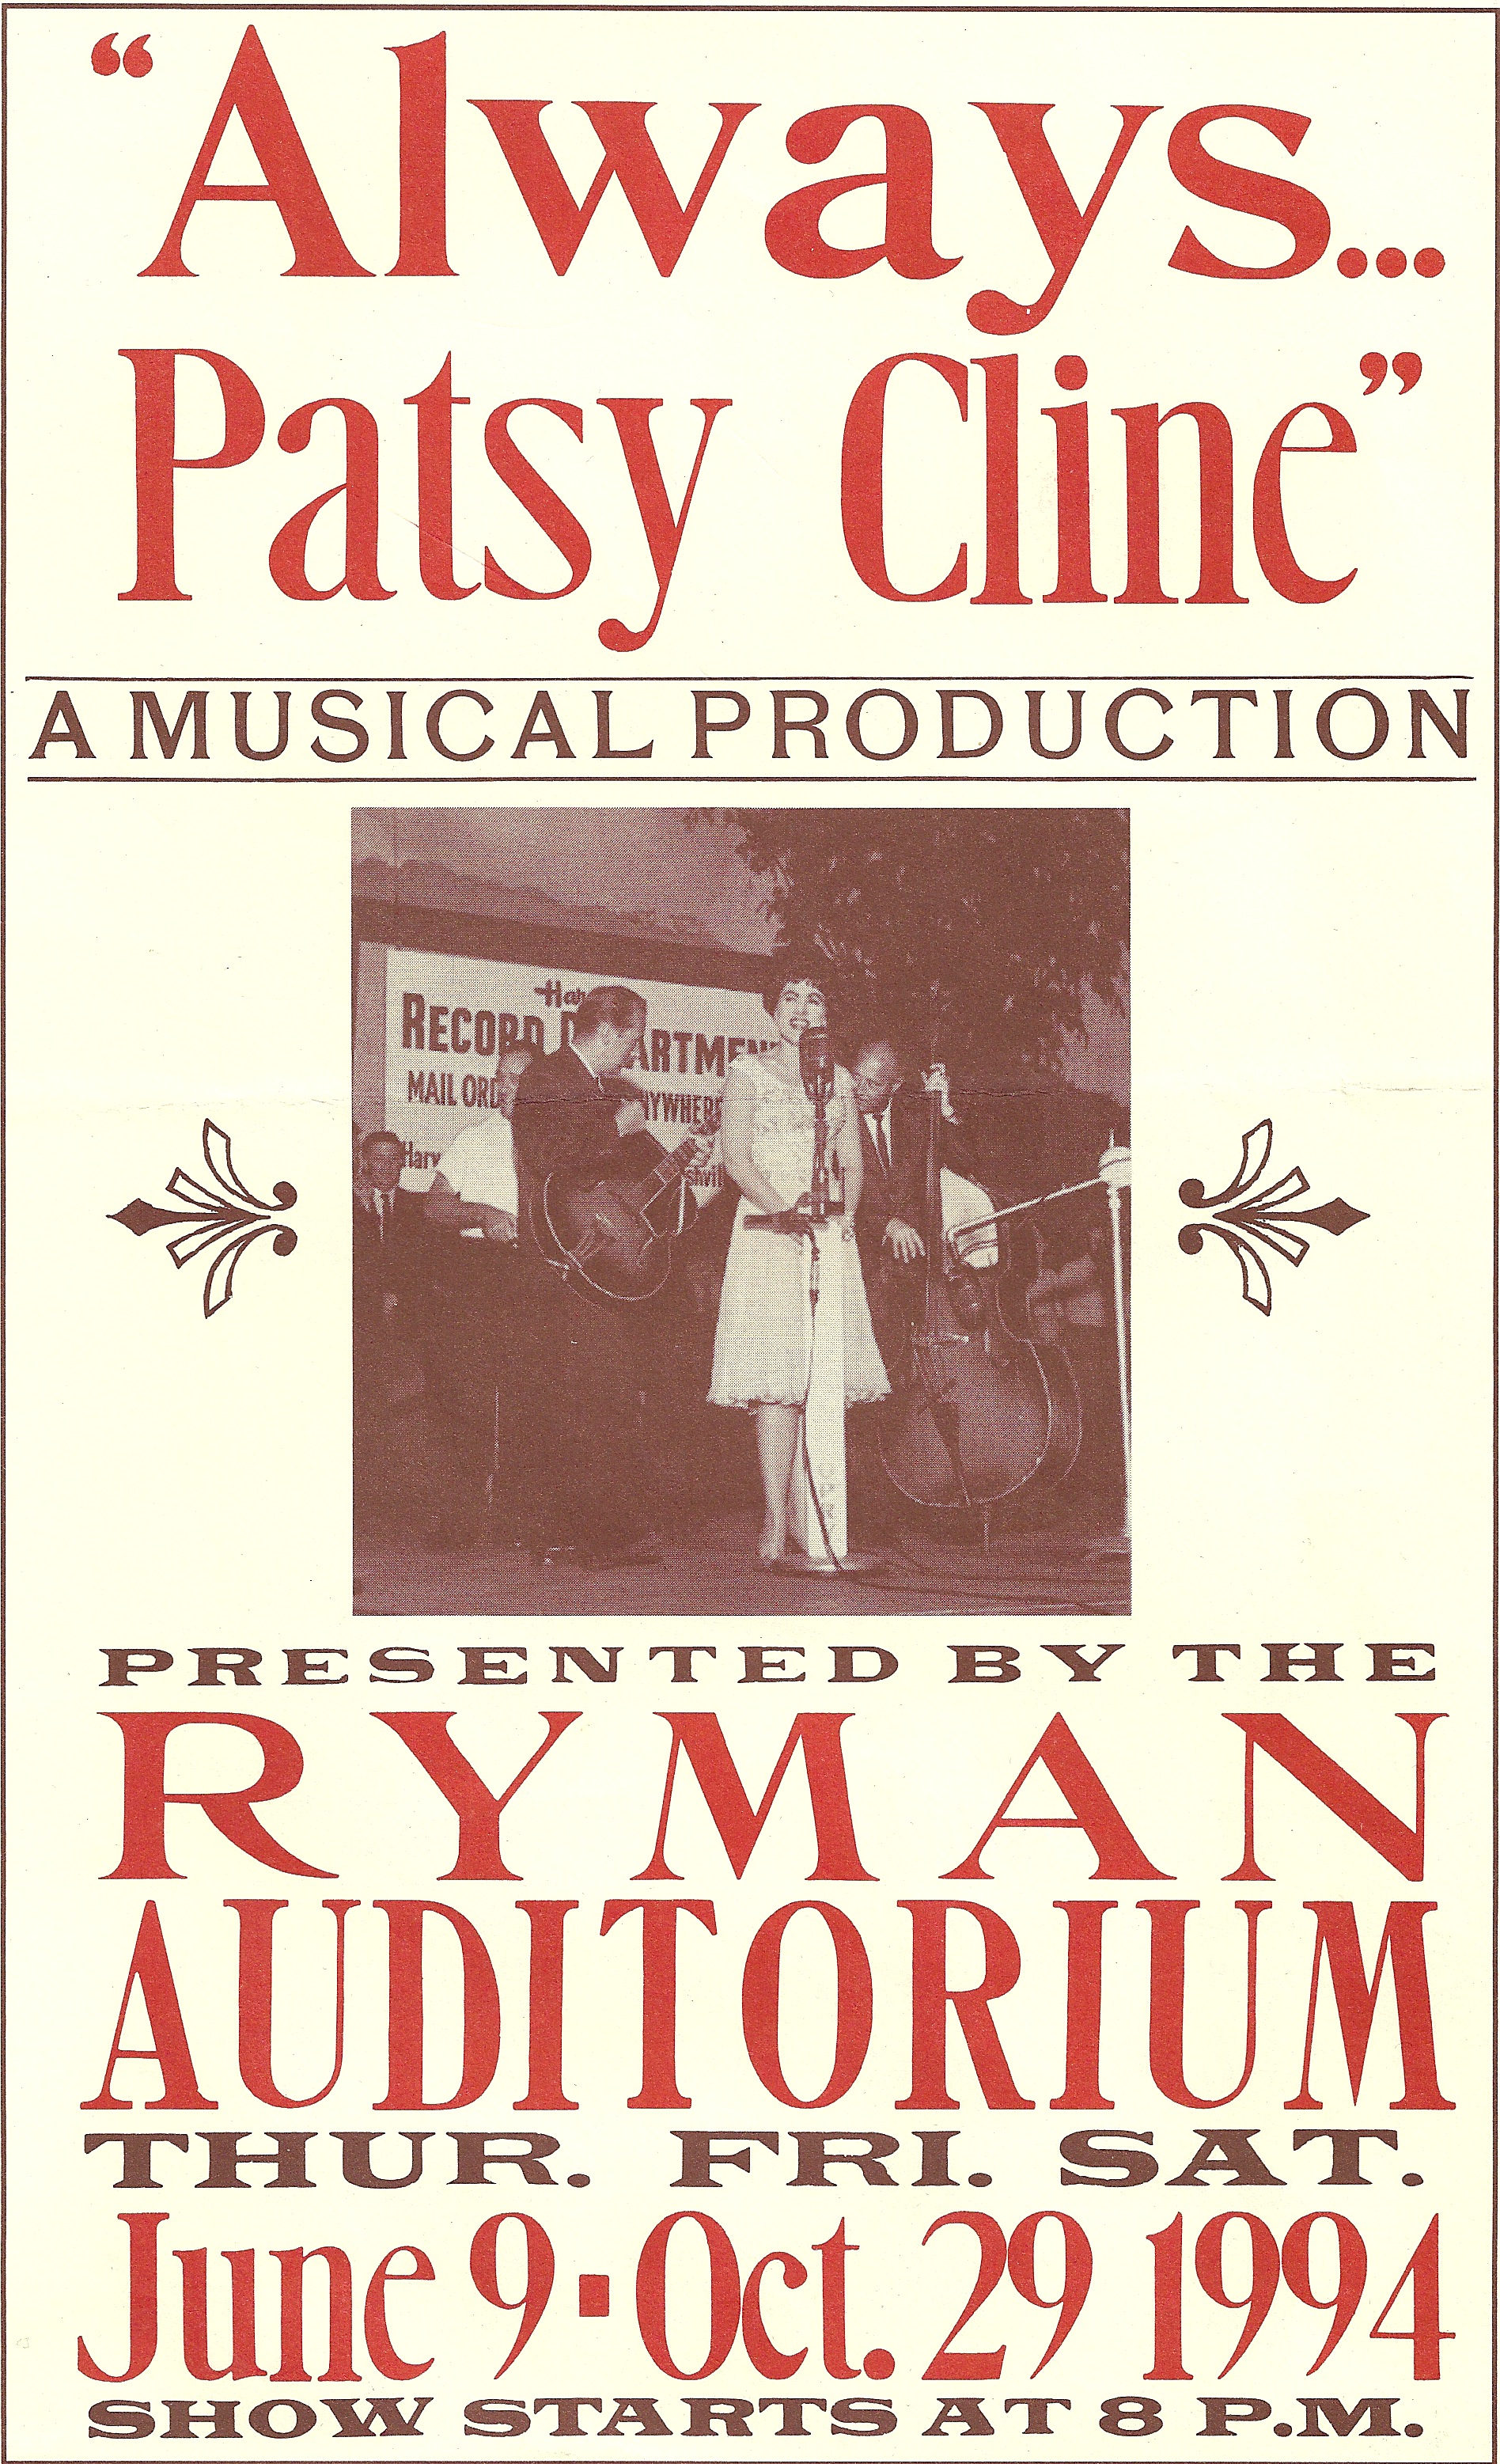 Always Patsy Cline